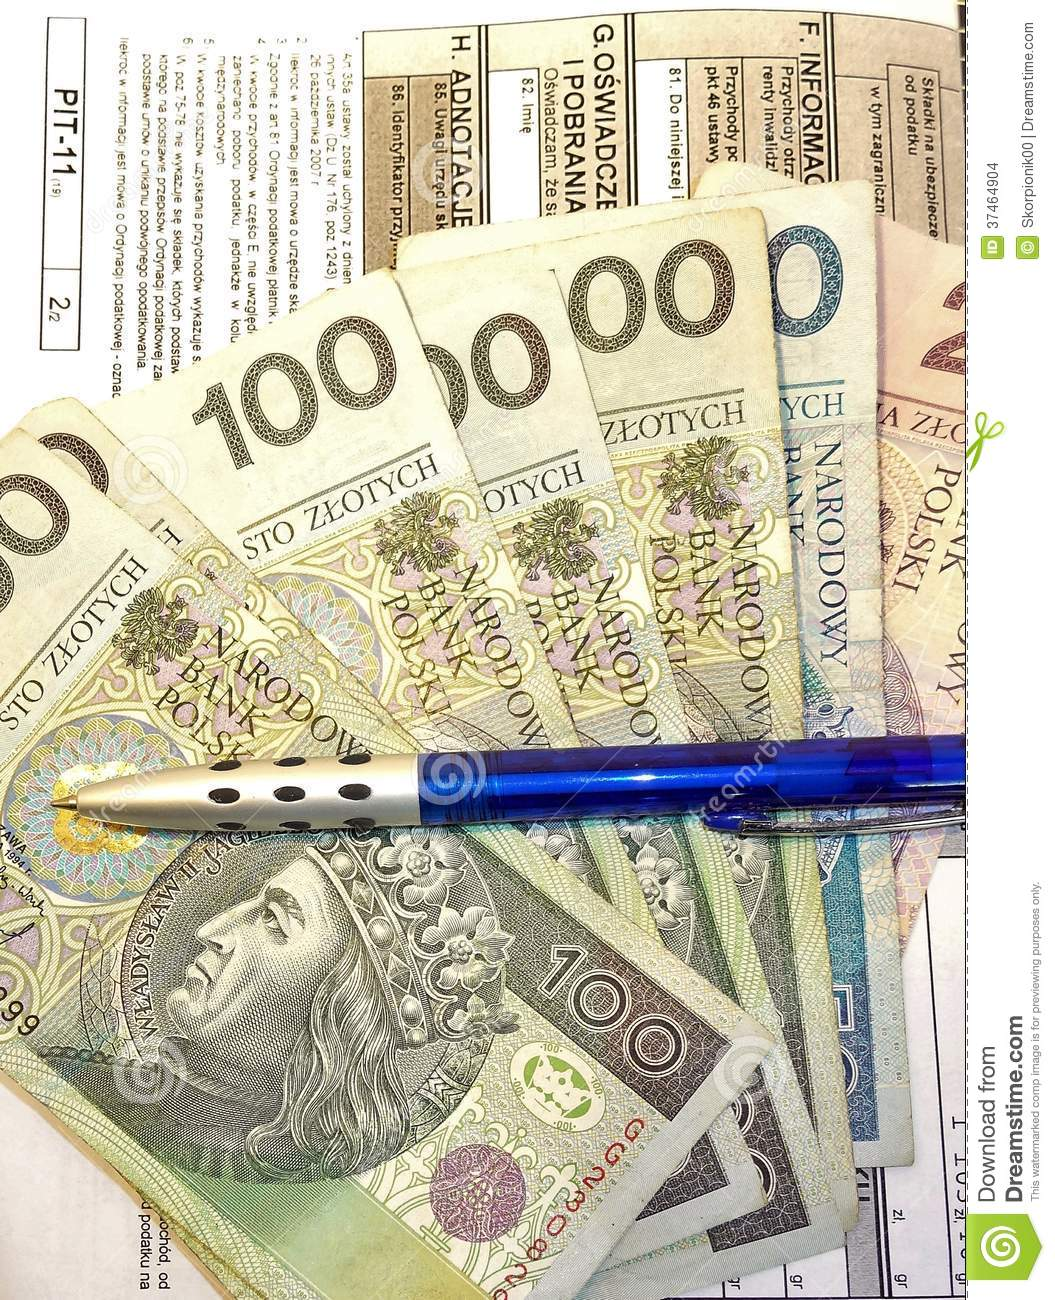 Polish tax form (PIT-11) and Polish money